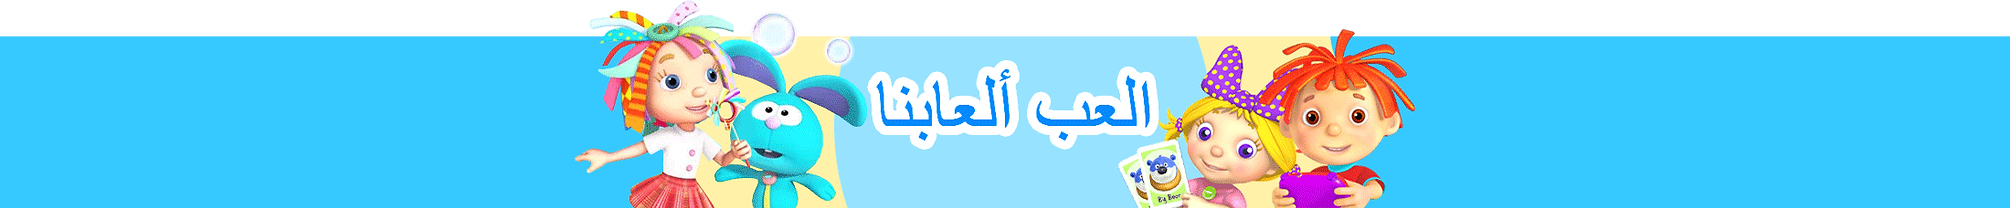 Arabic---Play-Our-Games-Banner.png